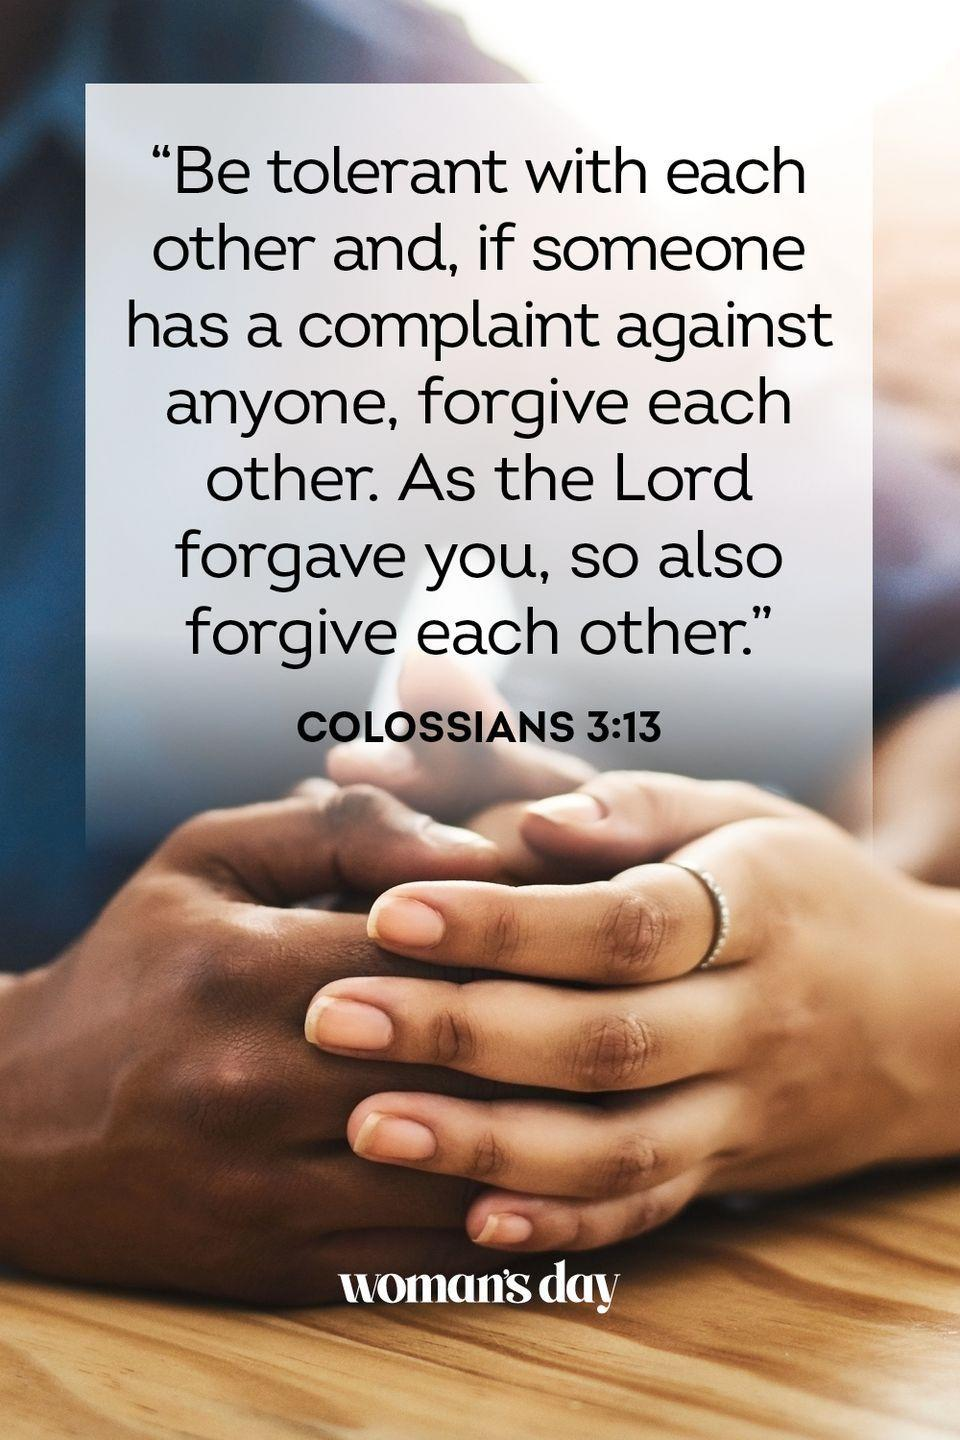 """<p>""""Be tolerant with each other and, if someone has a complaint against anyone, forgive each other. As the Lord forgave you, so also forgive each other."""" — Colossians 3:13</p><p><strong>The Good News: </strong>The Lord has and will forgive us for all of our sins. This is no easy task, and therefore we must take from his example and forgive others when they sin against us. </p>"""